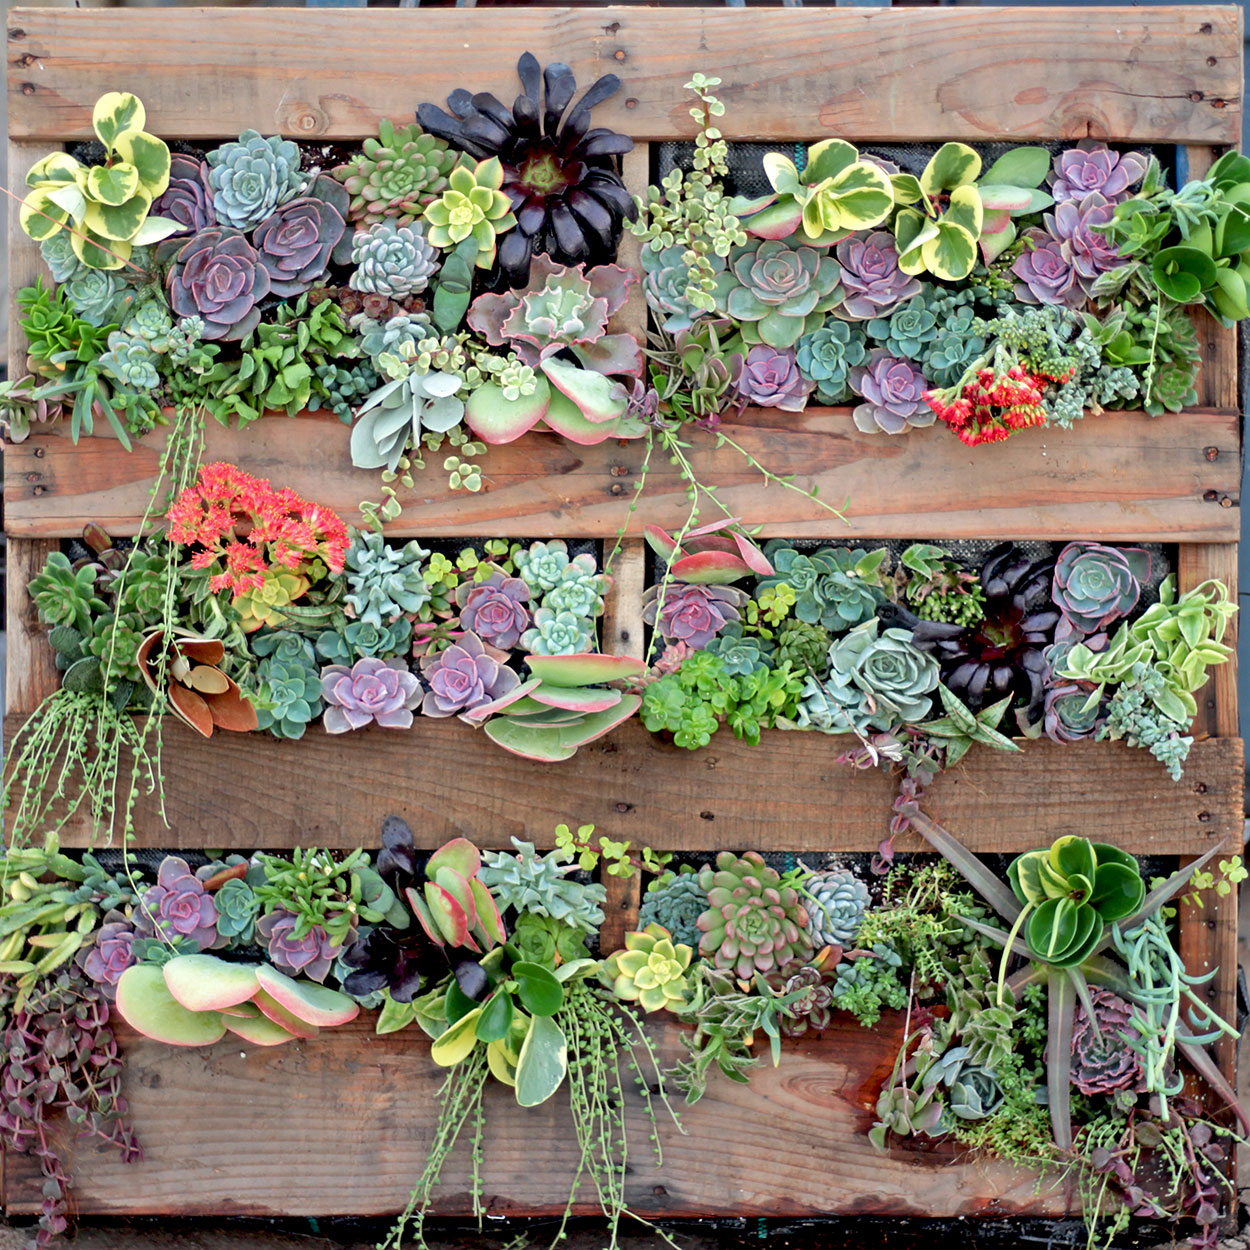 Beau Week 1 Is With Ashley, Our Production Supervisor, Who Has Been With Us For  5 Years. Ashley Has Decided To Create A Living Wall Using An Old Pallet.